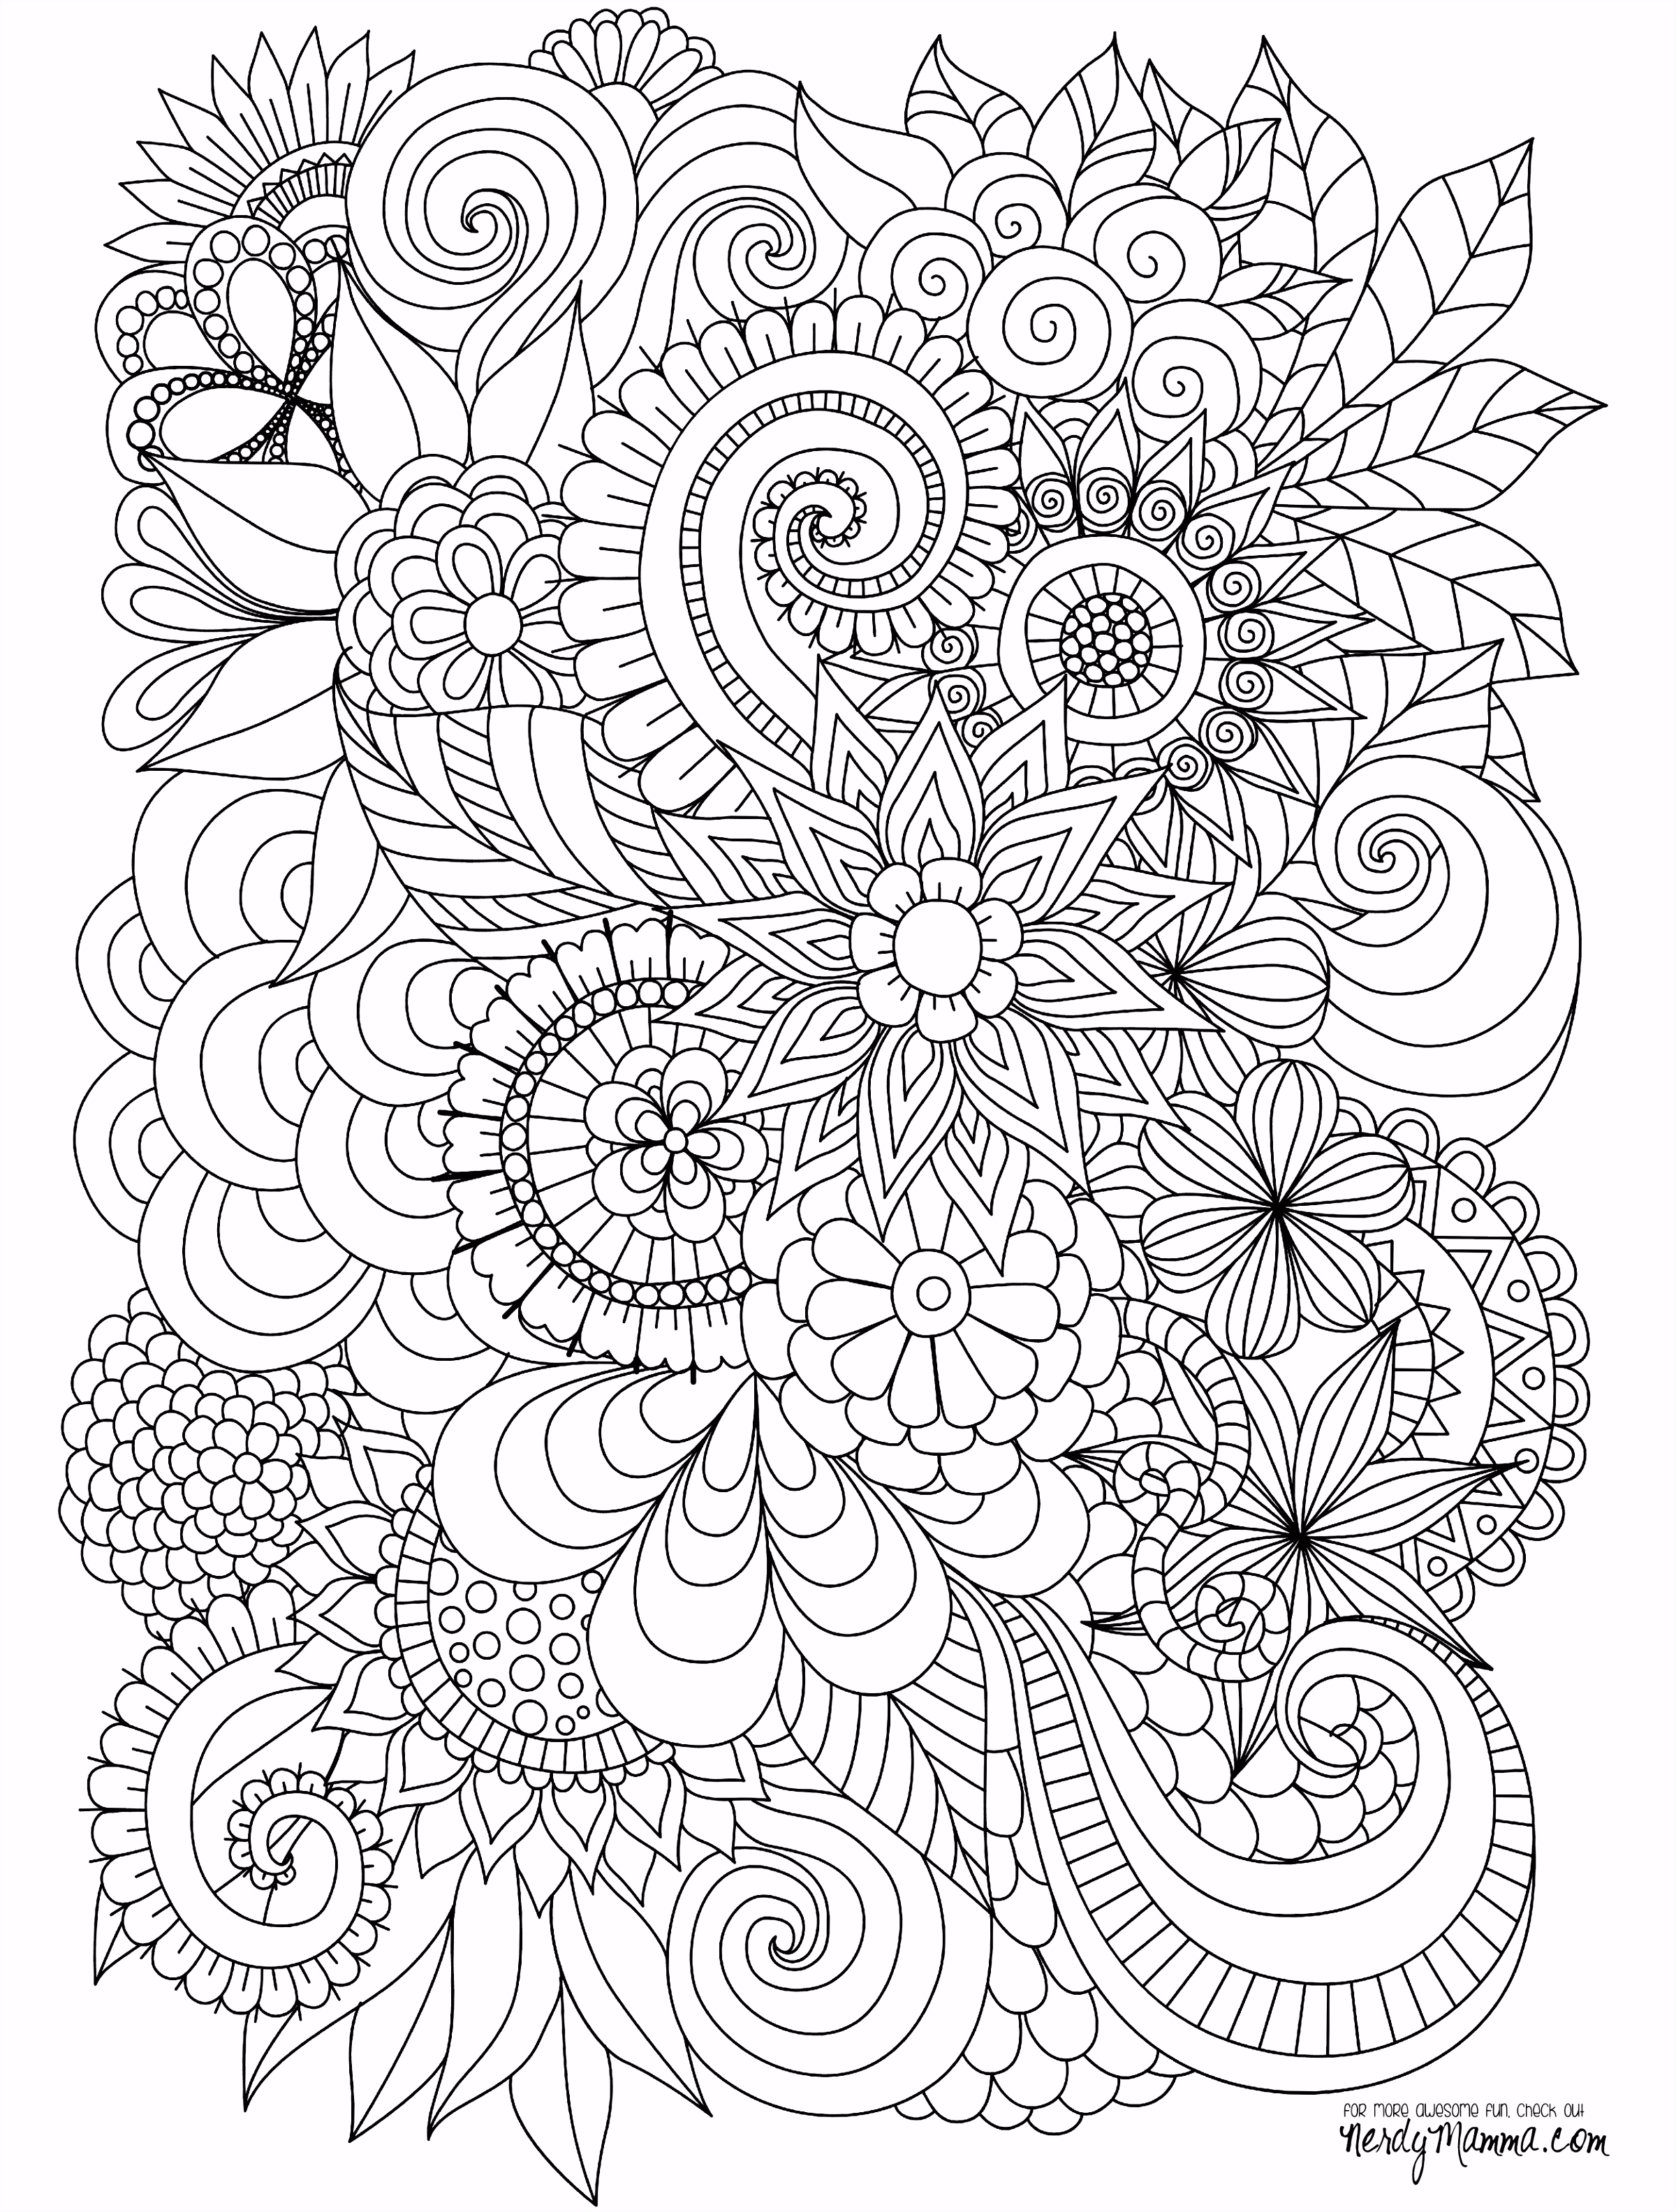 Flowers Abstract Coloring pages colouring adult detailed advanced